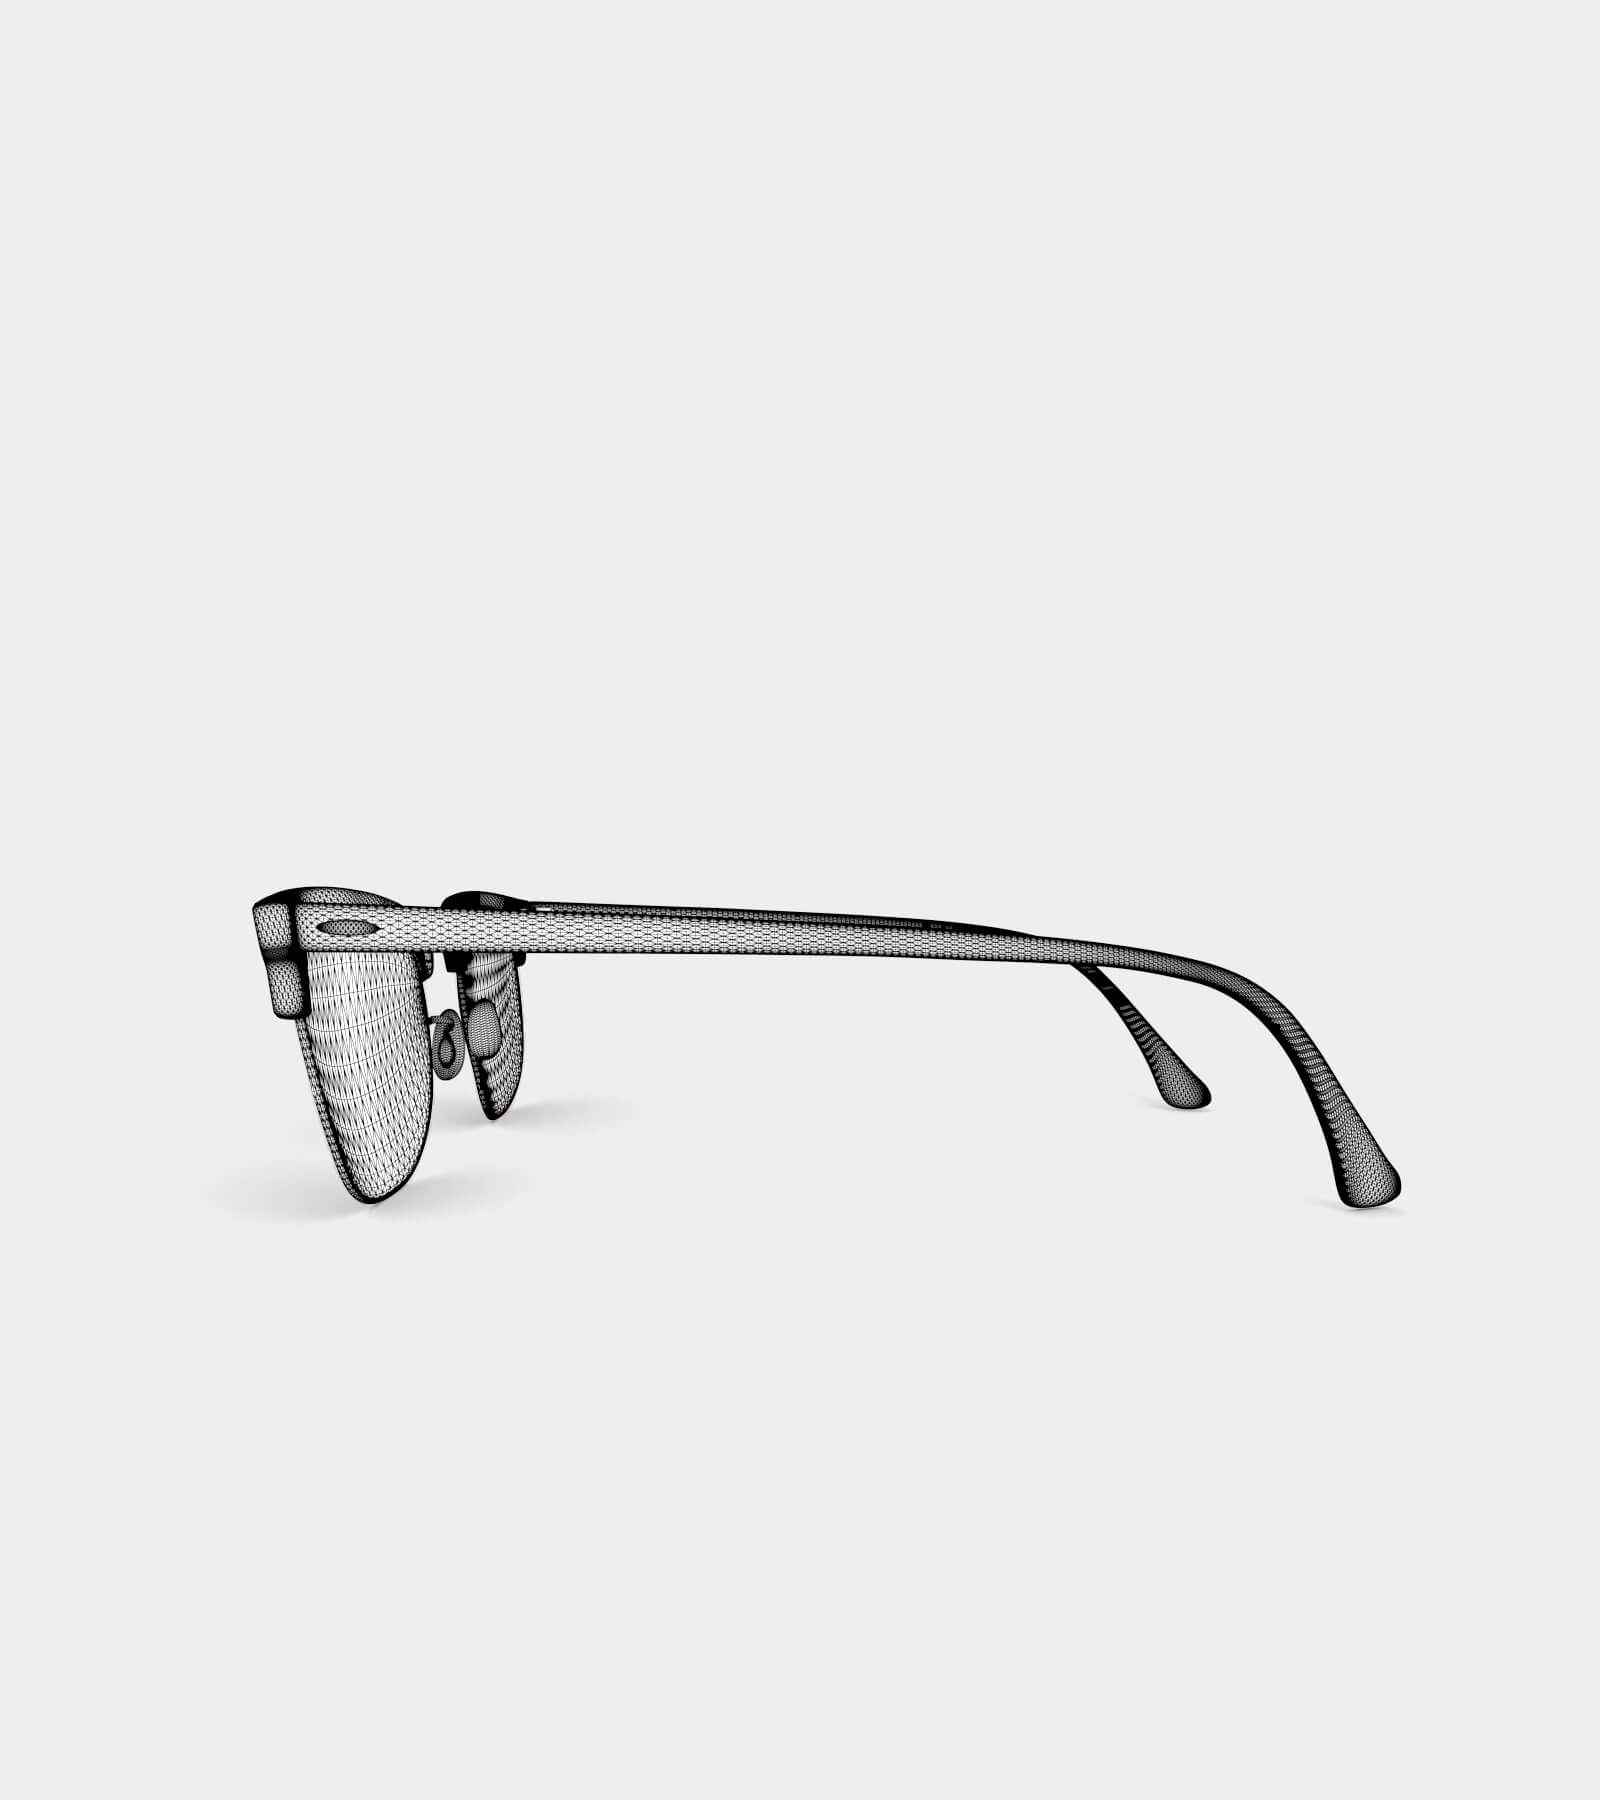 Sunglass-wire-1 3D Model